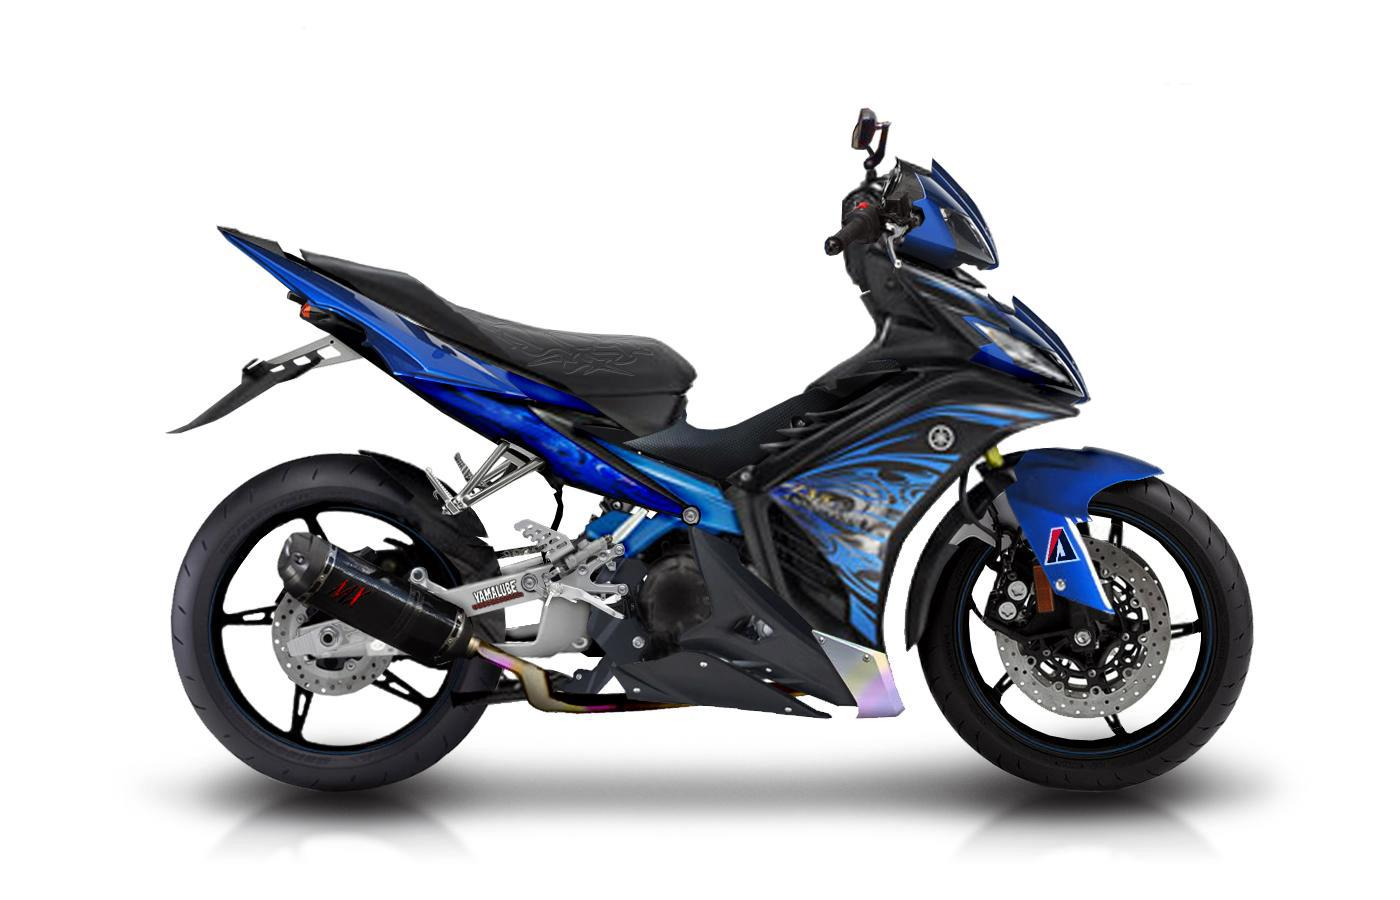 Modif NJMX ( New Jupiter MX ) , foto modifikasi motor new jupiter mx  title=